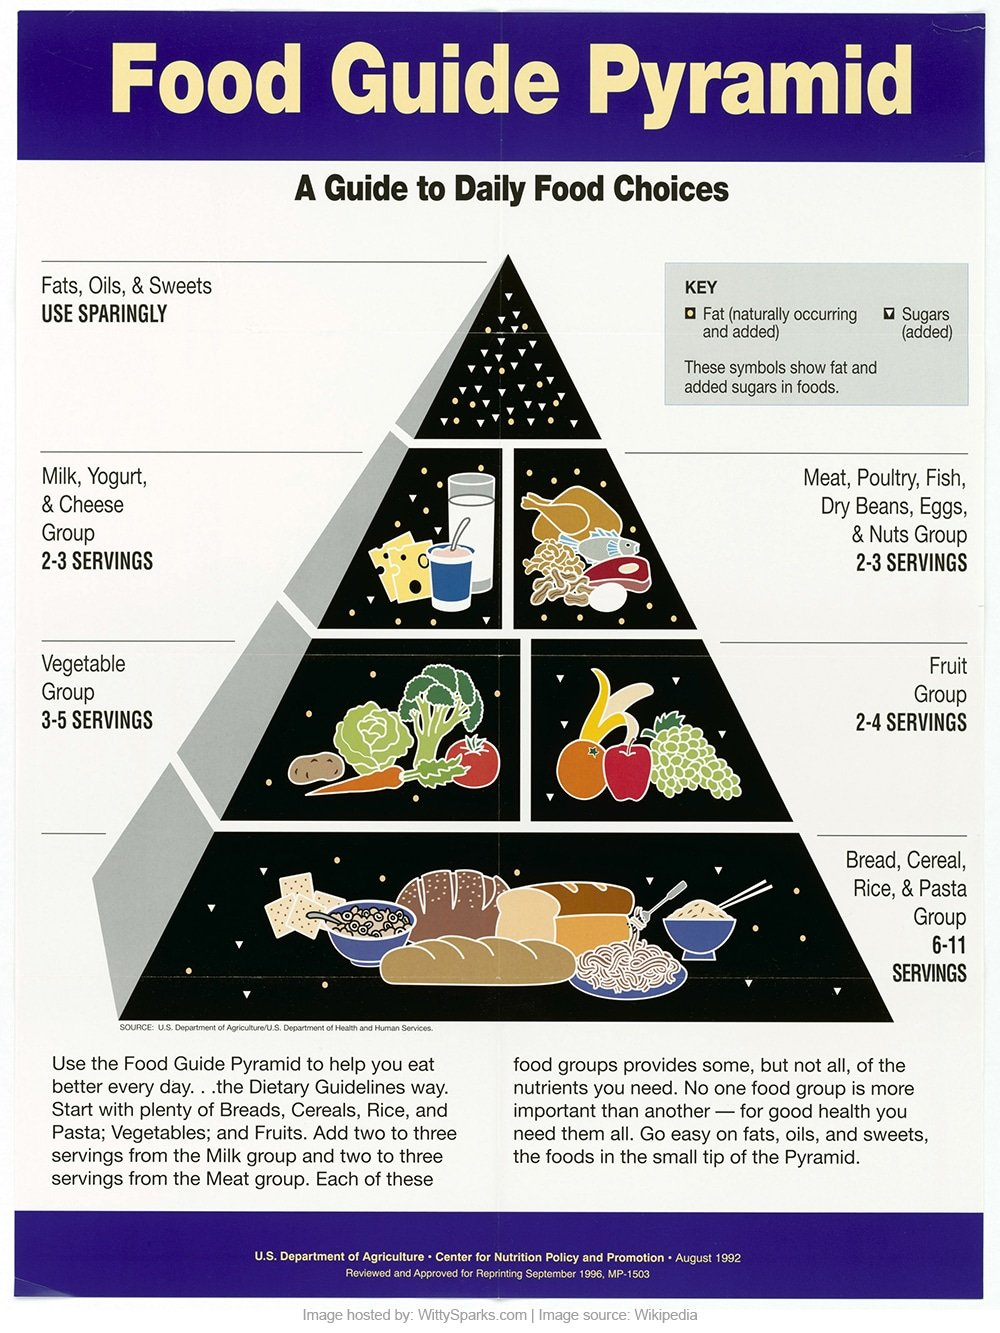 A Guide to Daily Food Choices